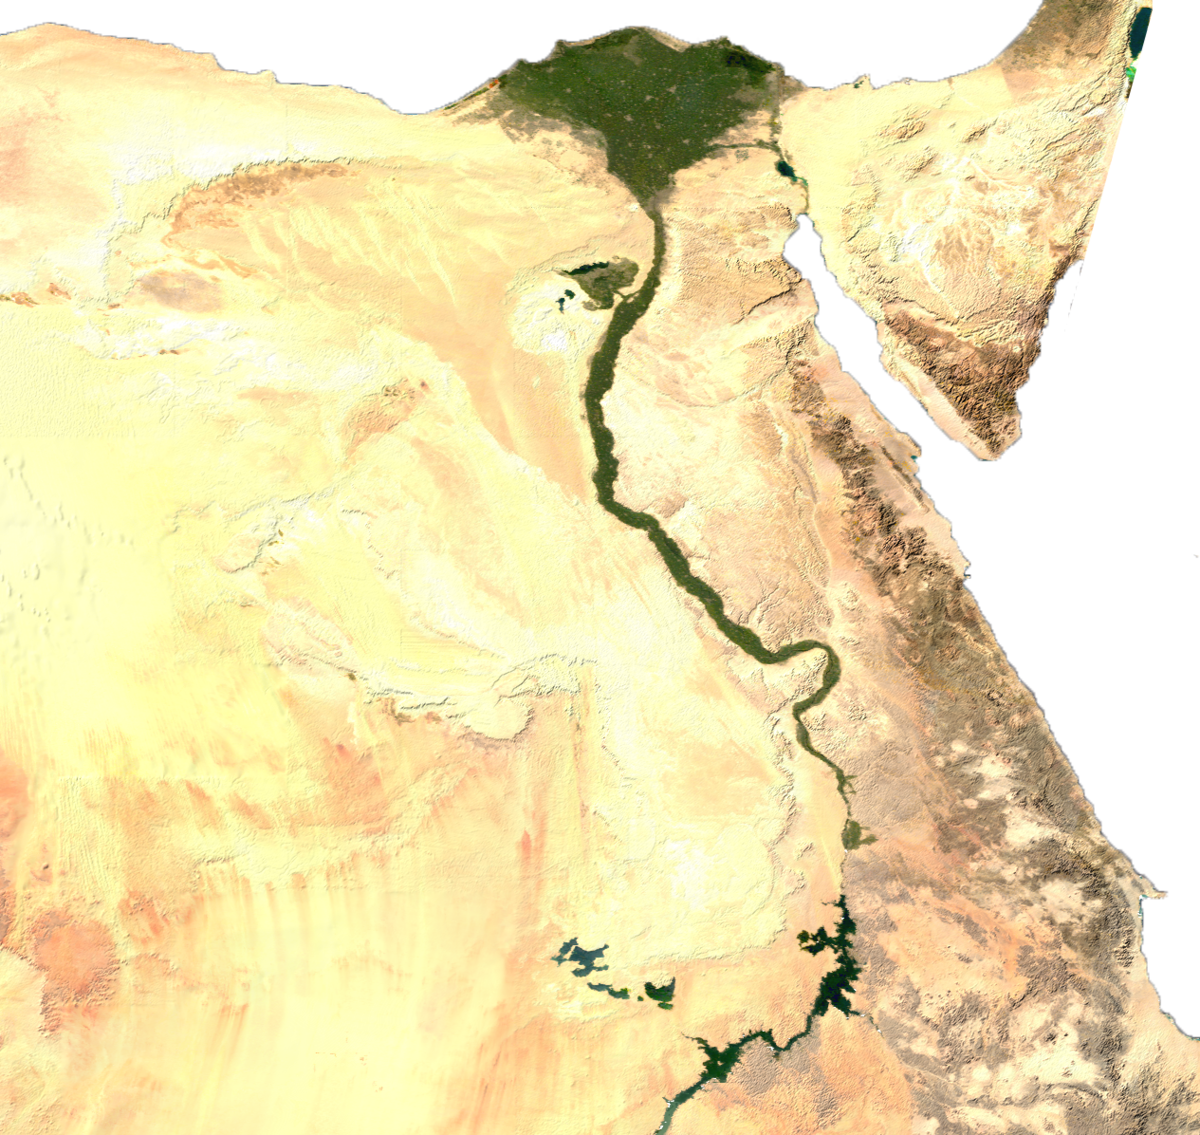 Climate of Egypt - Wikipedia on traceable map of egypt, earth map of egypt, temperature of egypt, resource map of egypt, ancient egypt, agricultural map of egypt, old map of egypt, physical map of egypt, forecast map of egypt, google maps of egypt, precipitation of egypt, outline map of egypt, topographical map of egypt, statistics of egypt, hd map of egypt, satellite view of egypt, world map of egypt, square miles of egypt, aerial view of egypt, full map of egypt,